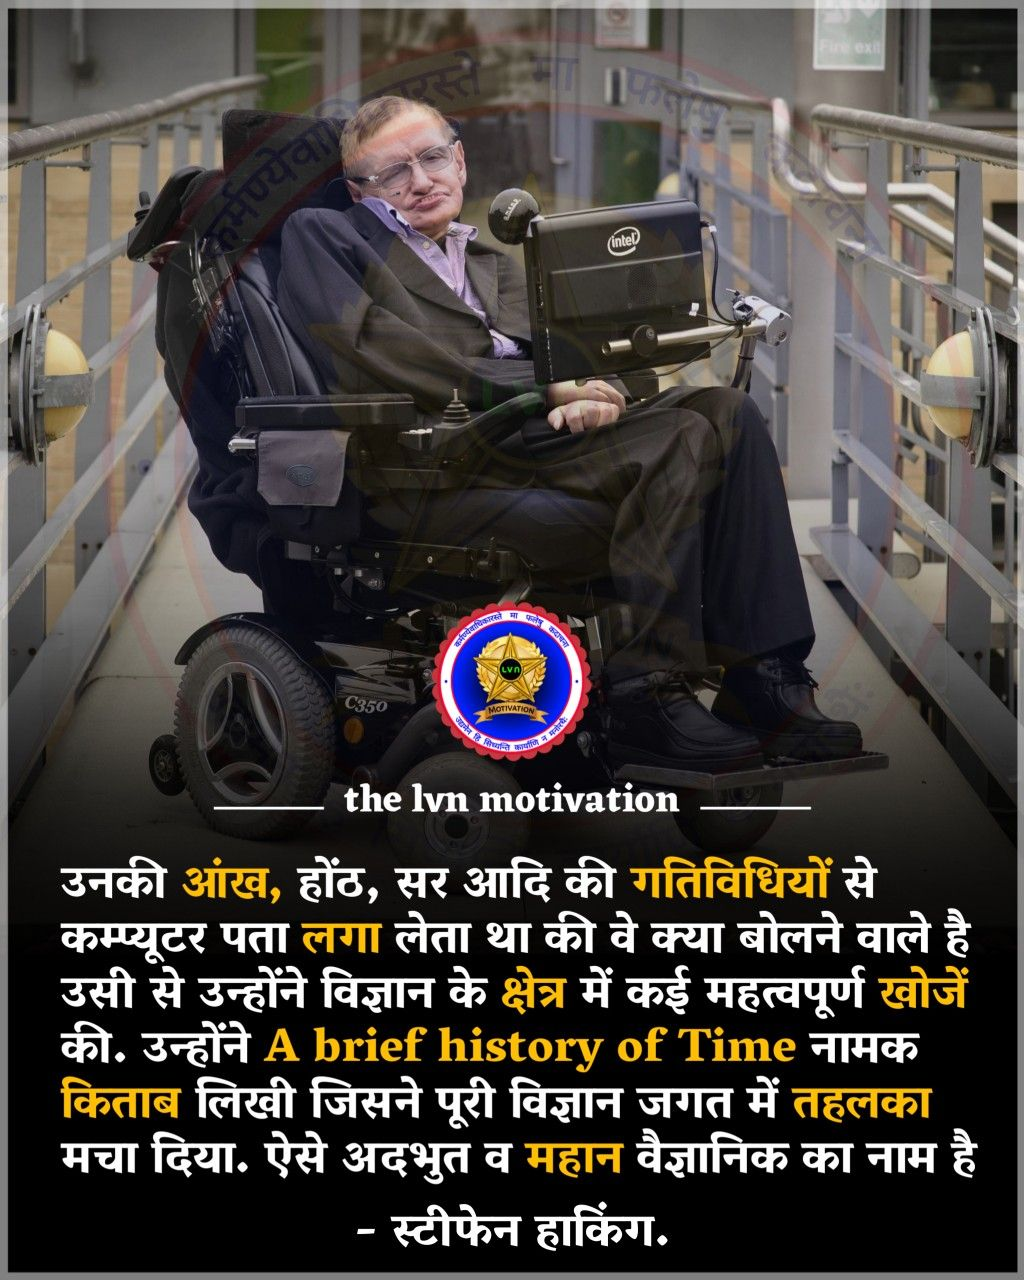 Stephen Hawking Biography In Hindi Life Facts Motivation Motivational Videos